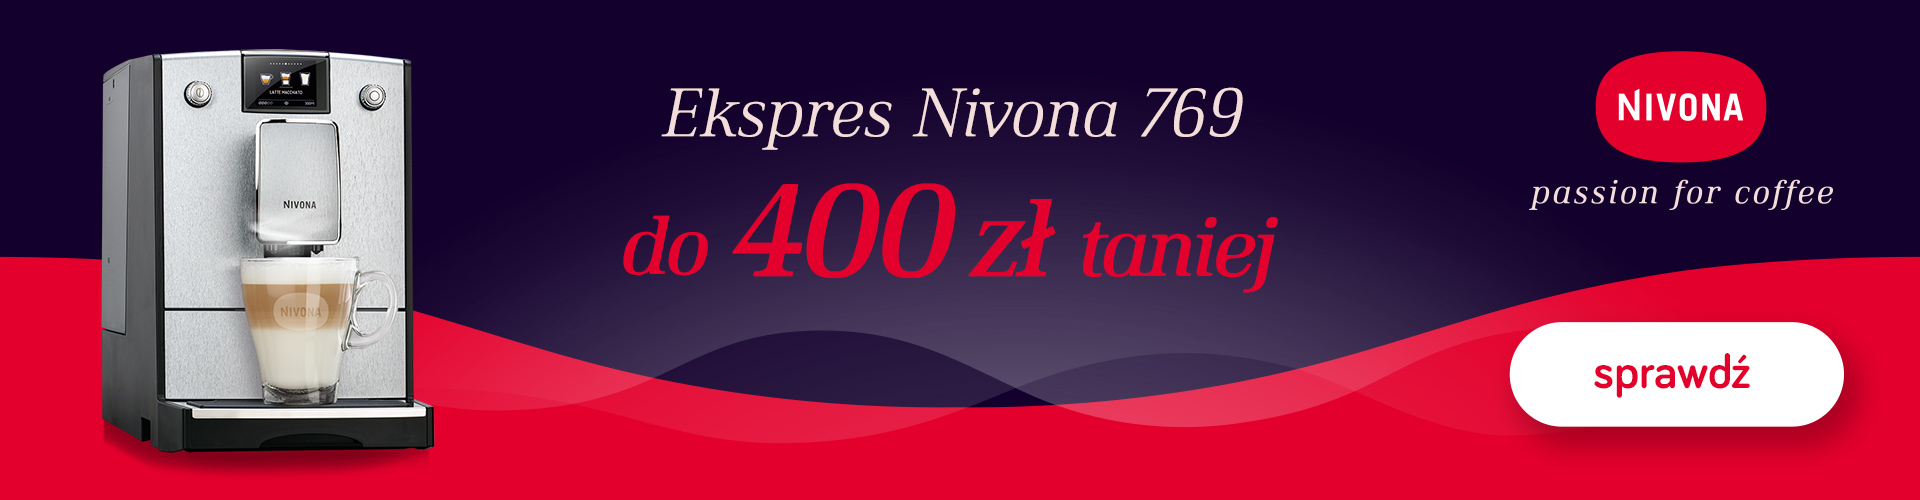 Konesso: do 400 zł rabatu na ekspres do kawy Nivona 769